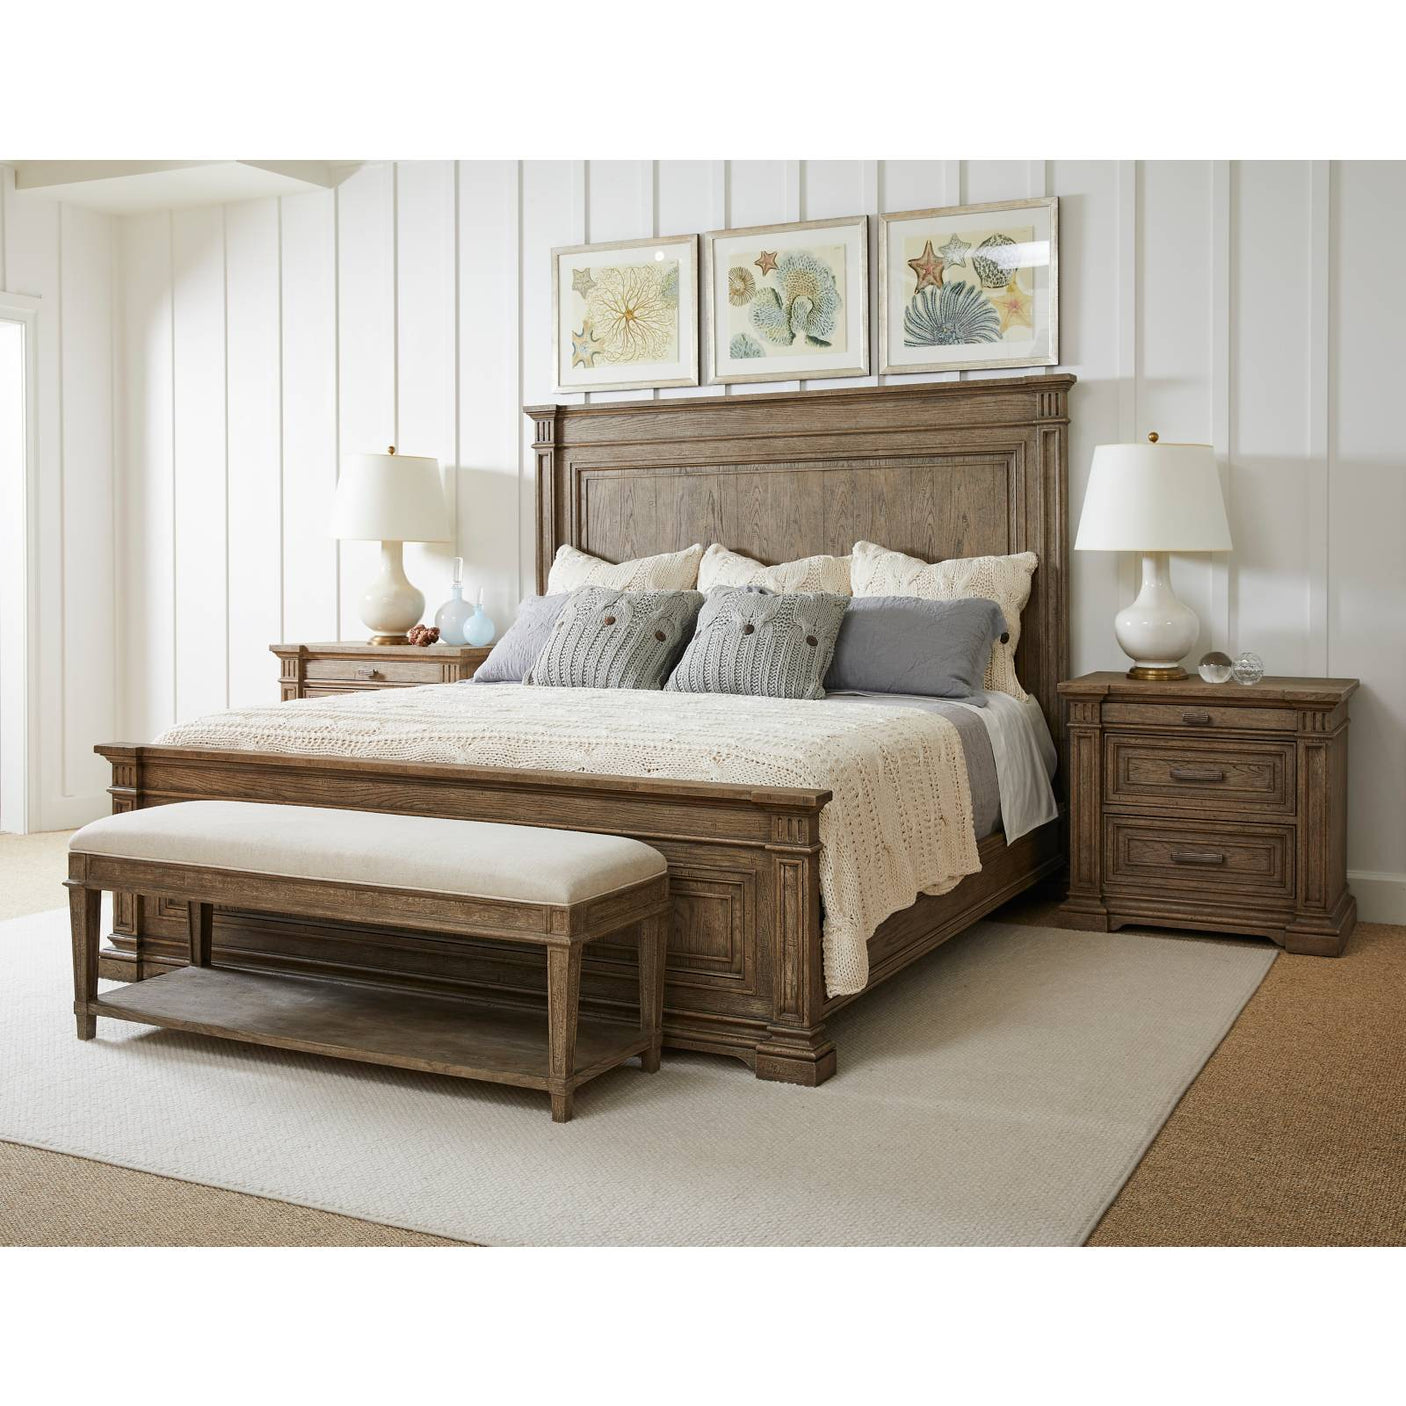 Portico Bed End Bench Stanley Furniture